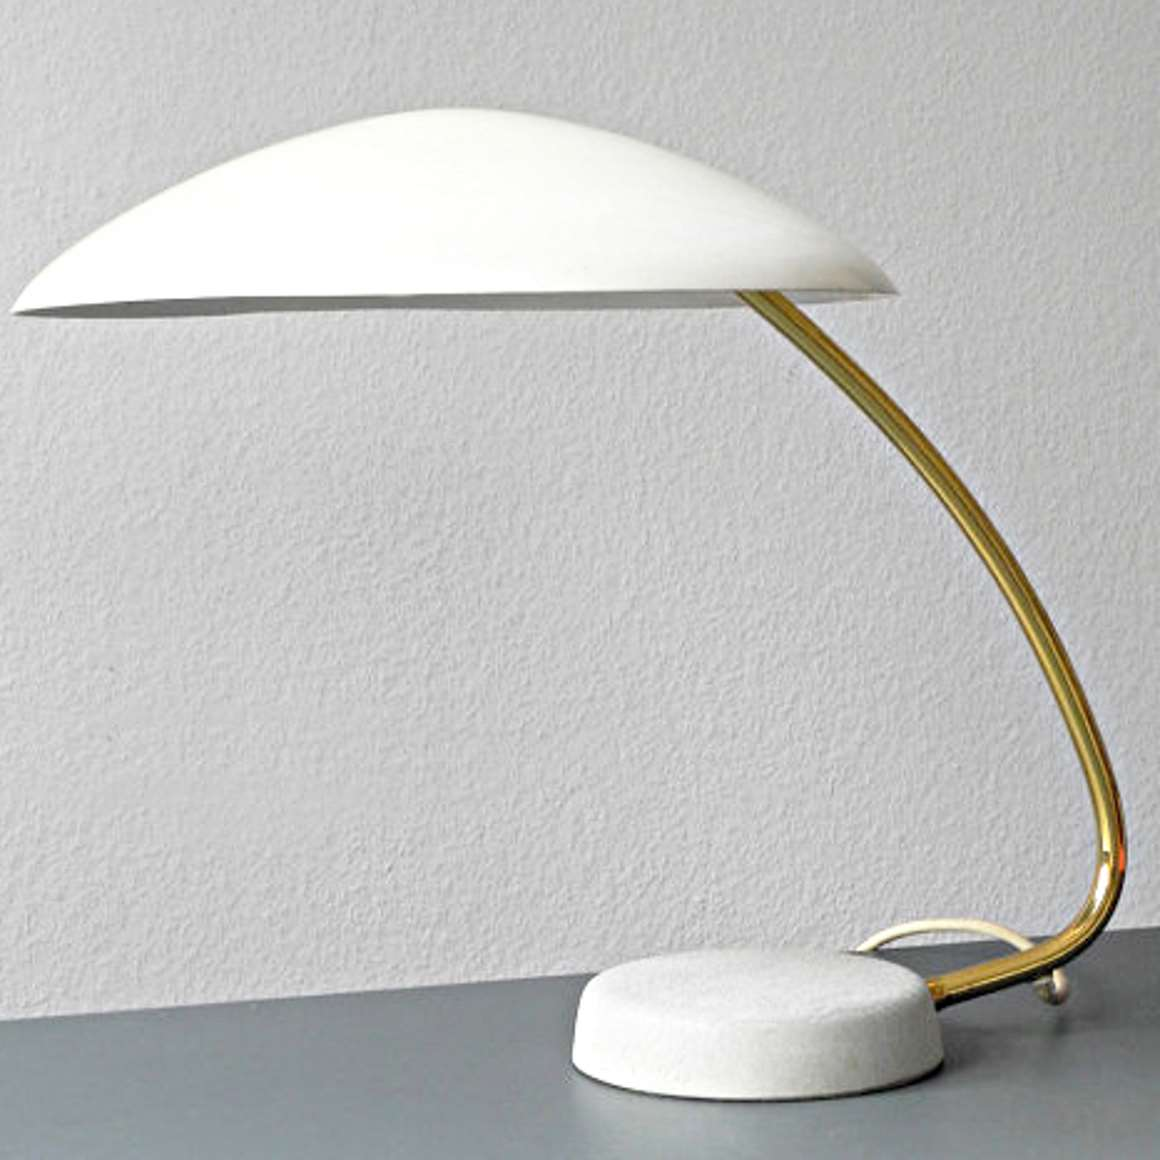 1950s Cosack Desk Lamp - White version - Produced by Gebrüder Cosack (Gecos)